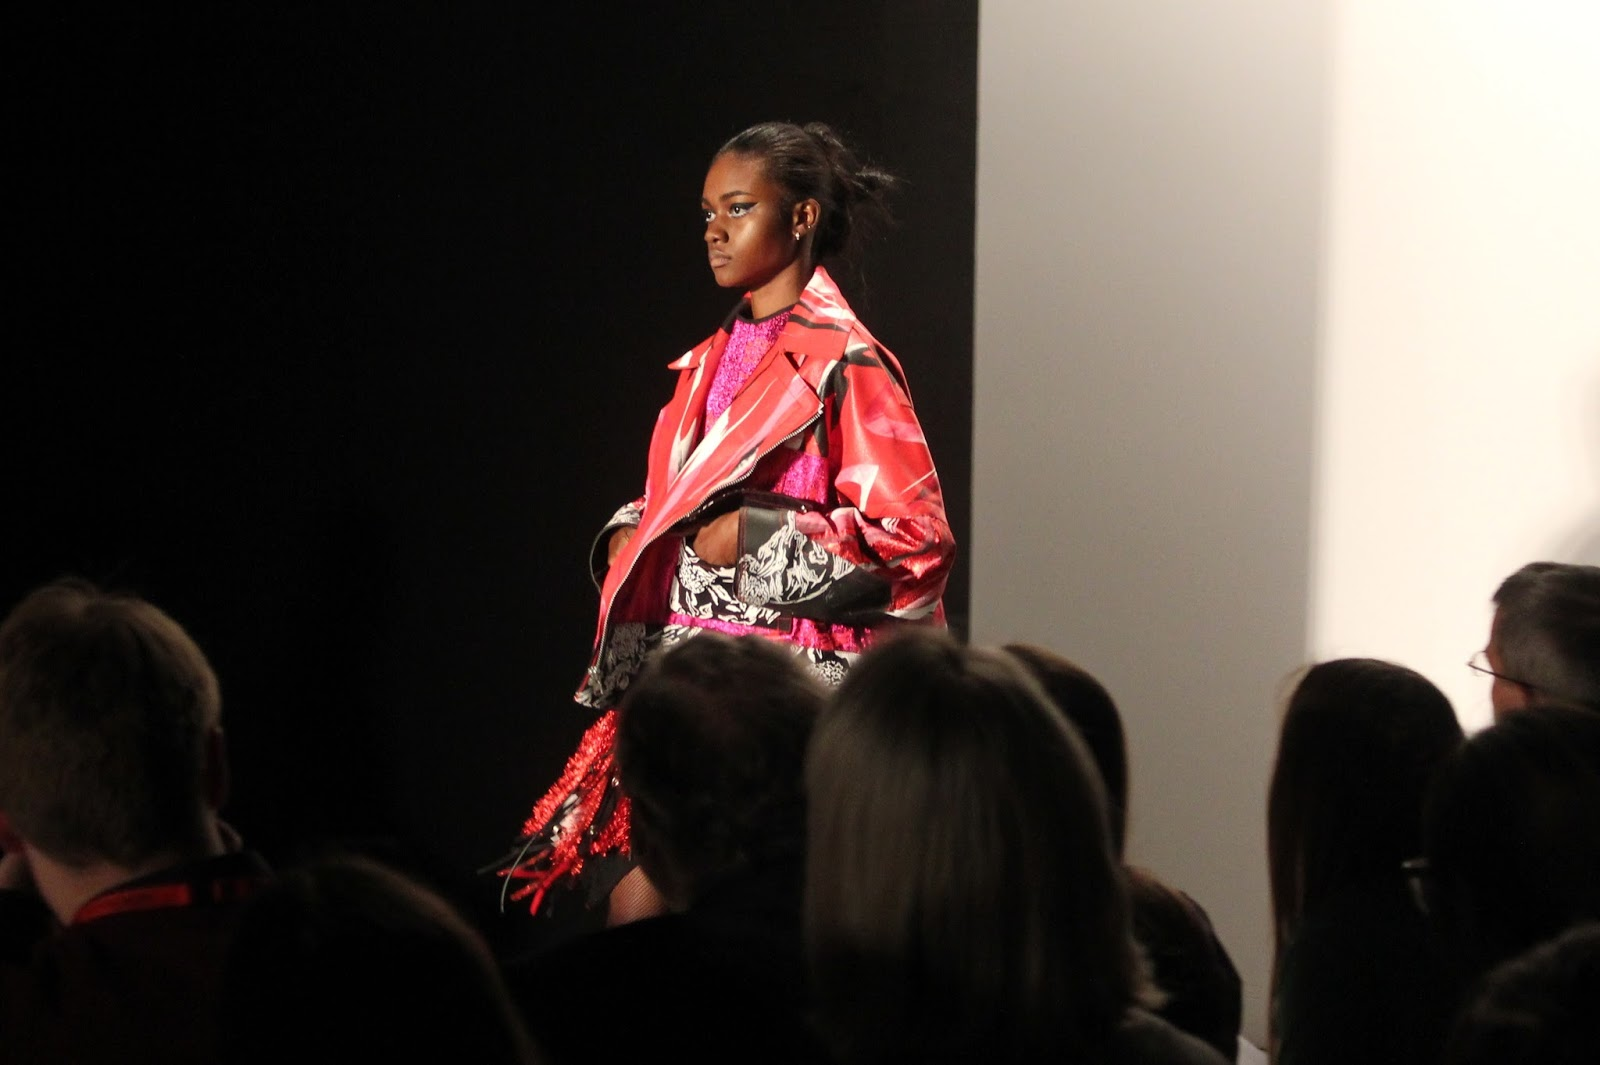 georgie-georgina-minter-brown-frequencies-blogger-fashion-university-of-westminster-runway-show-catwalk-models